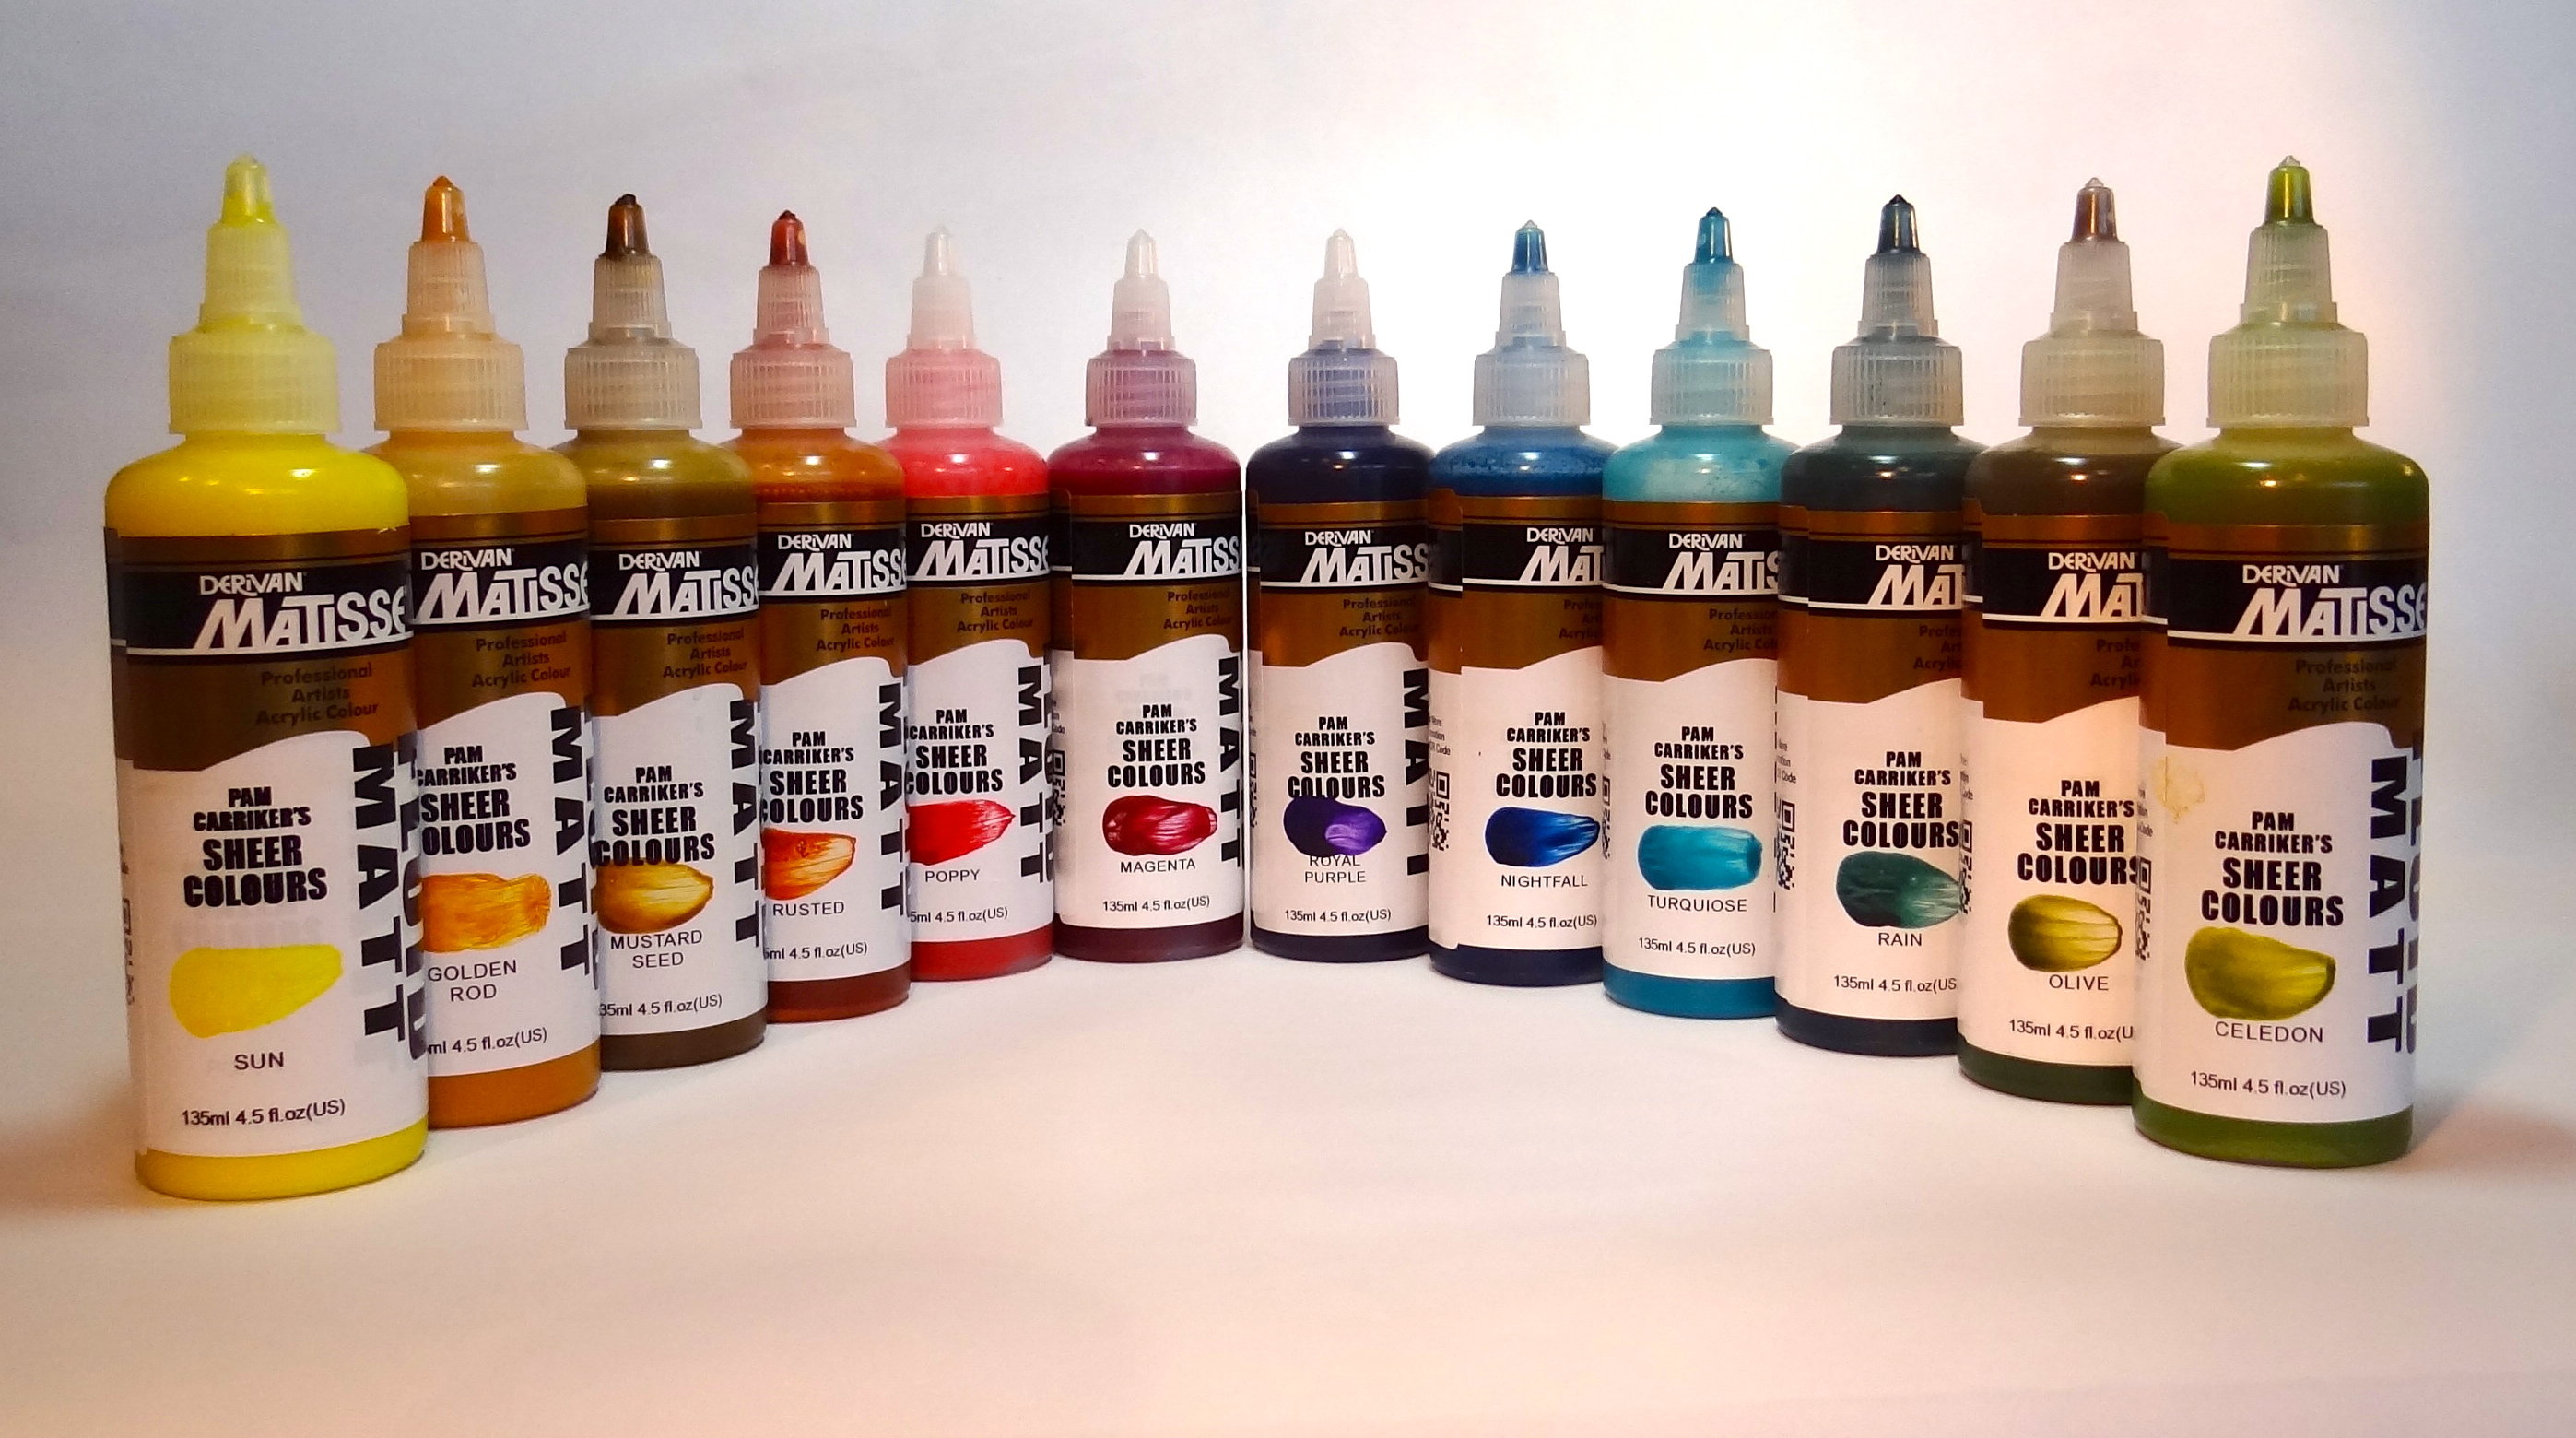 PCarriker Matte Fluid Sheer Colours1